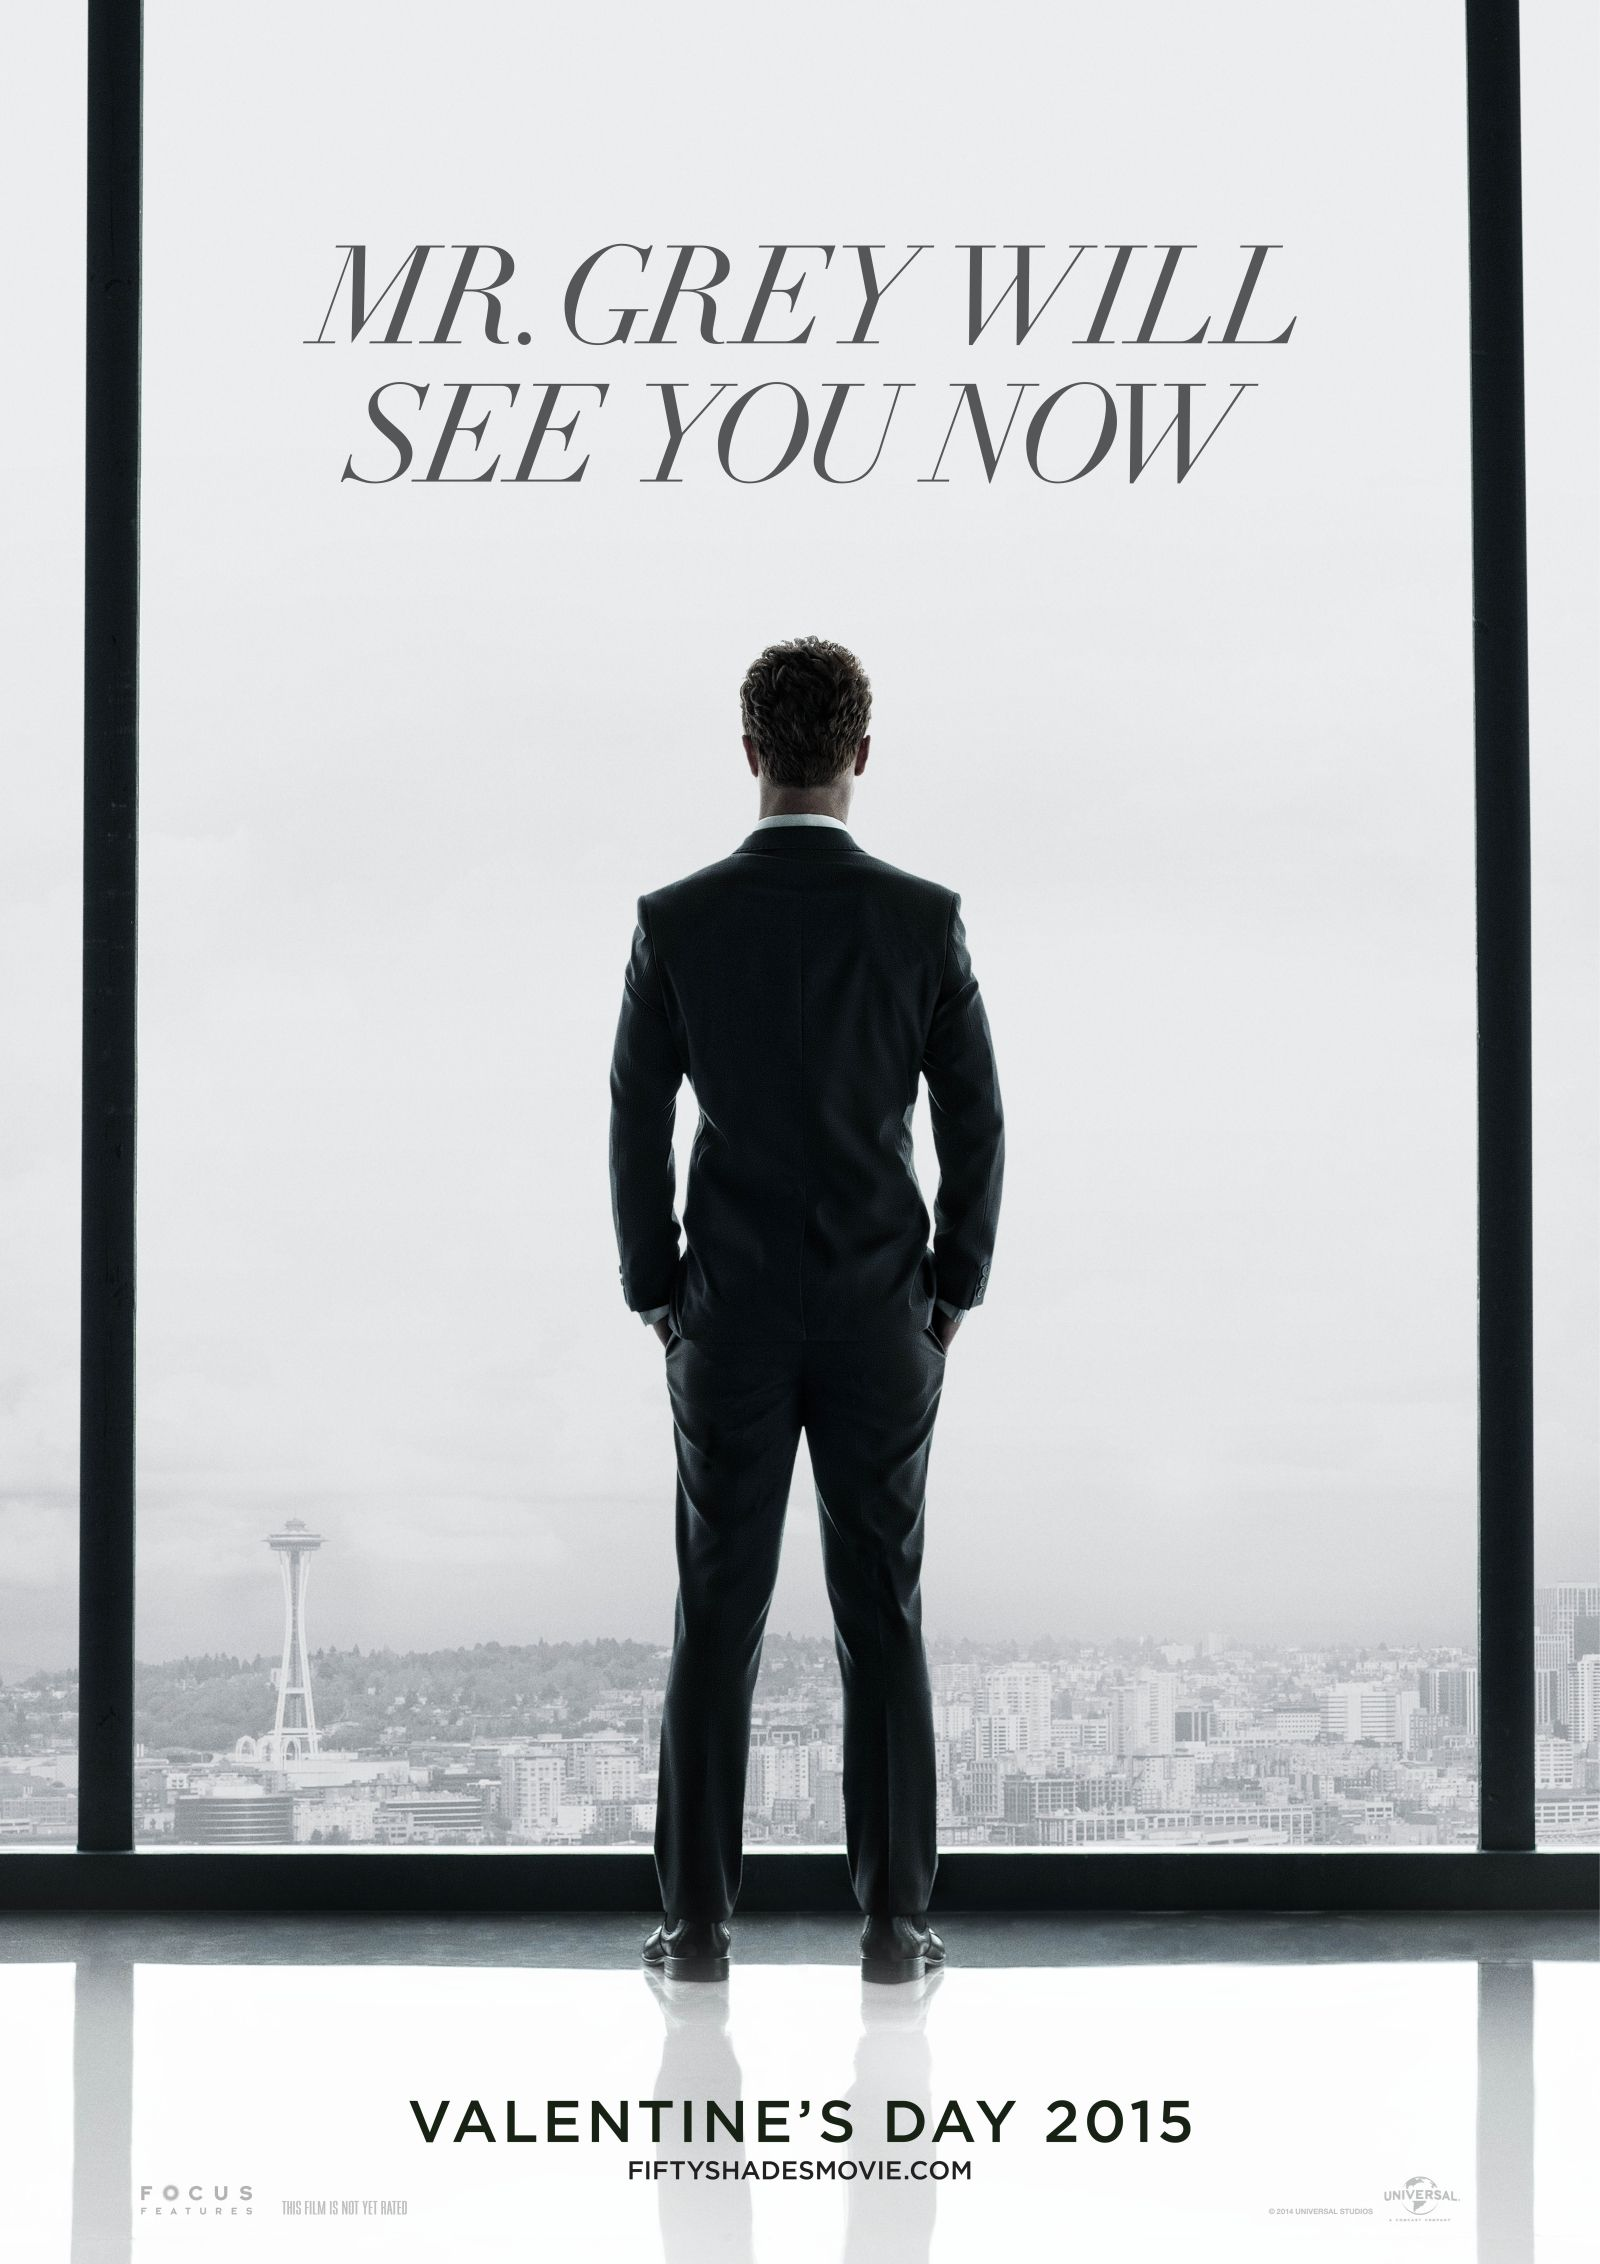 Fifty shades of grey poster cesar chavez official poster for Fifty shades og grey